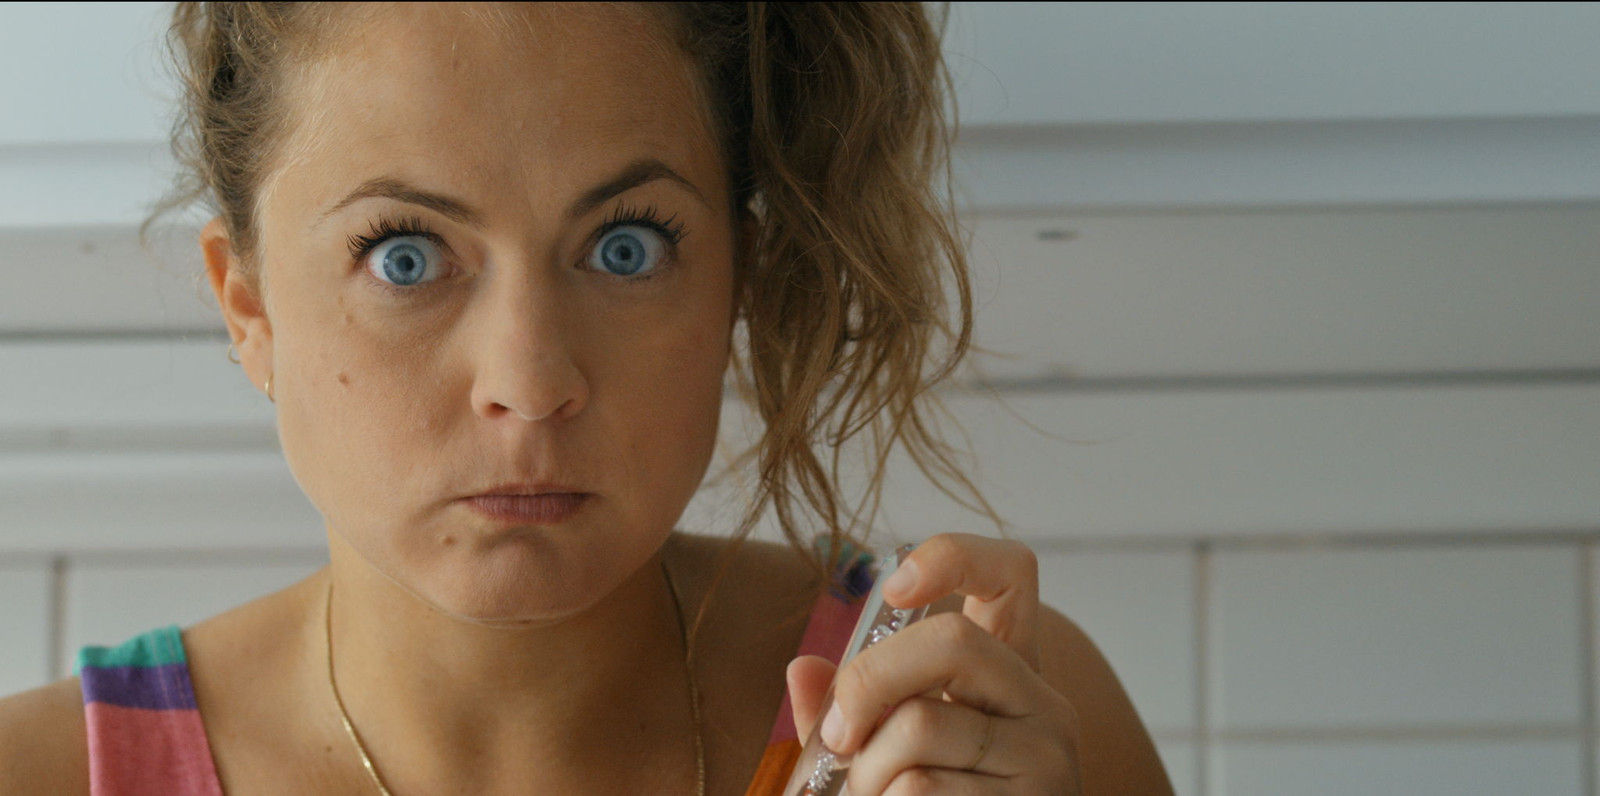 Frances Lefebure in 'F*** You Very Very Much'